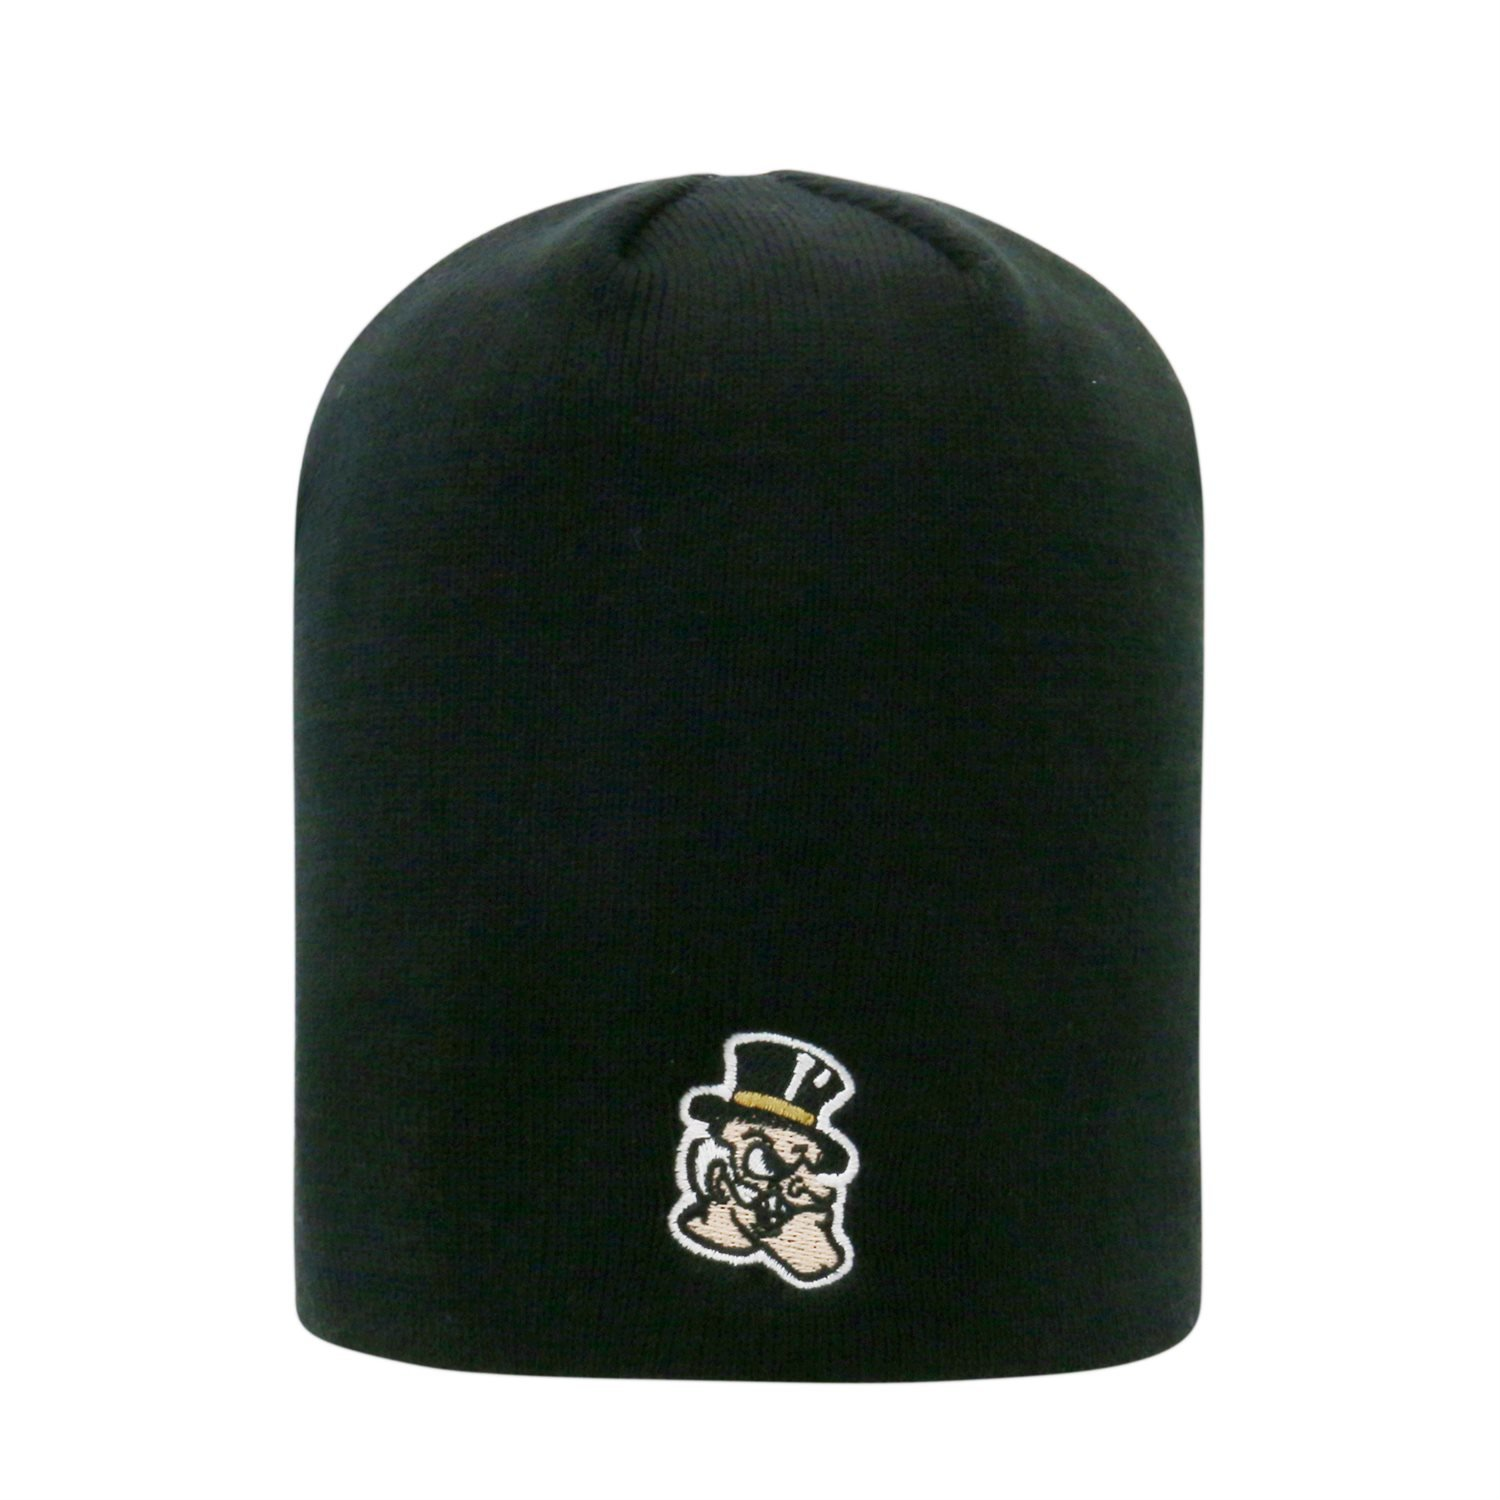 NCAA EZ DOZIT Knit Skull Cap Top of the World Cuffless 2-Sided Beanie Hat